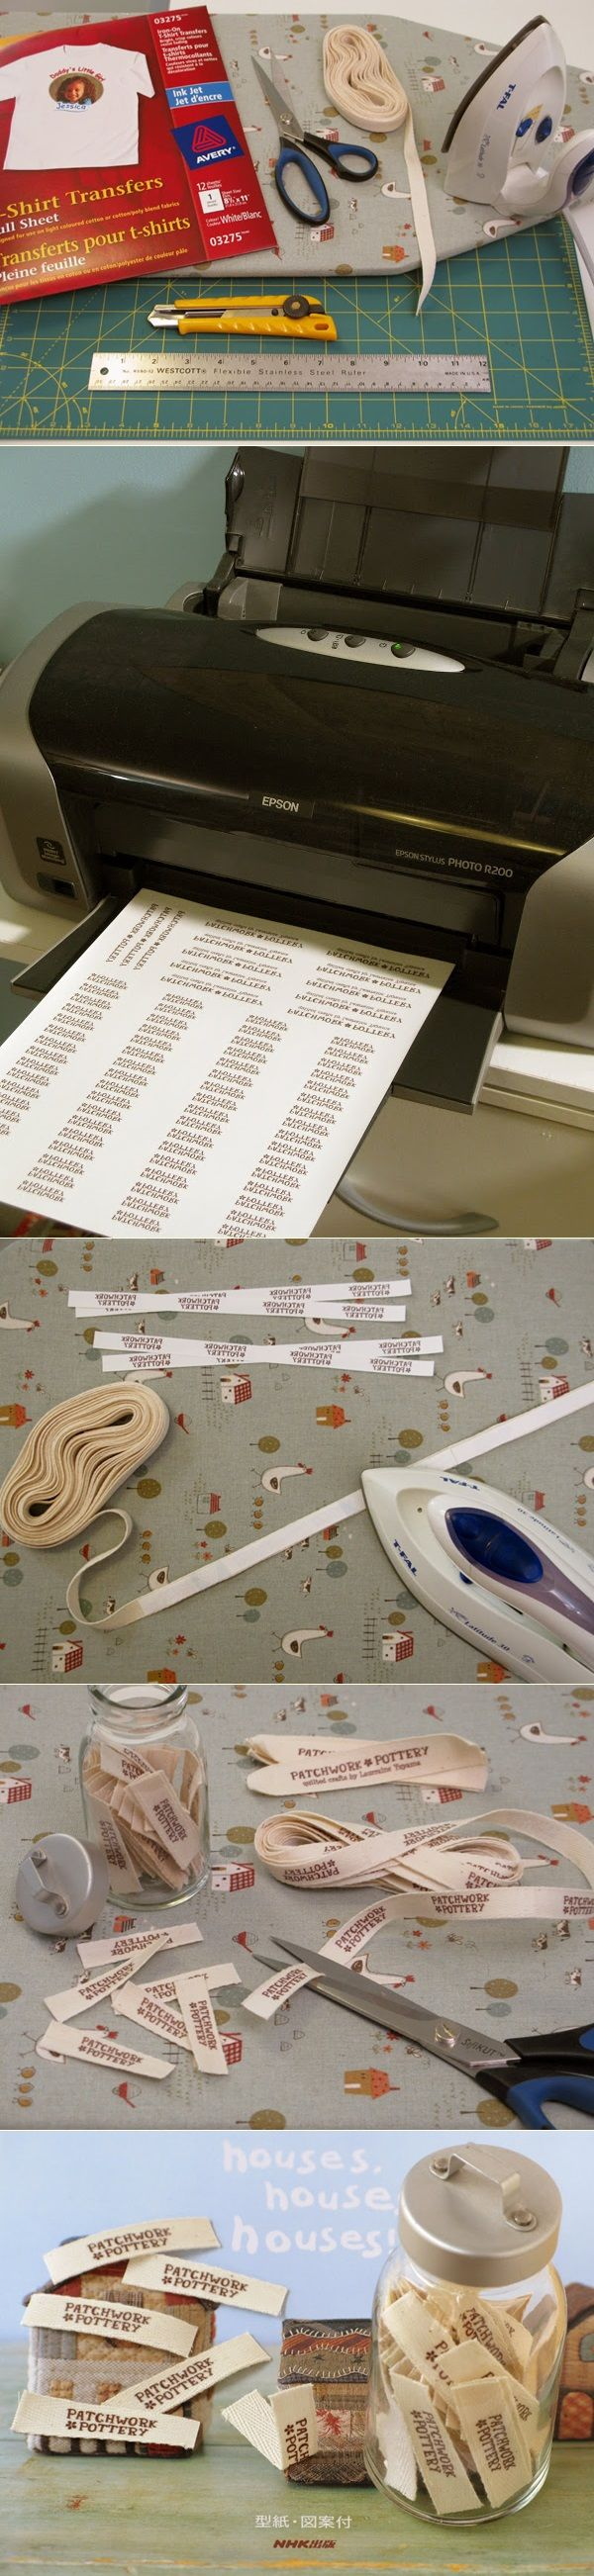 brand yourself and your homemade products with diy fabric labels